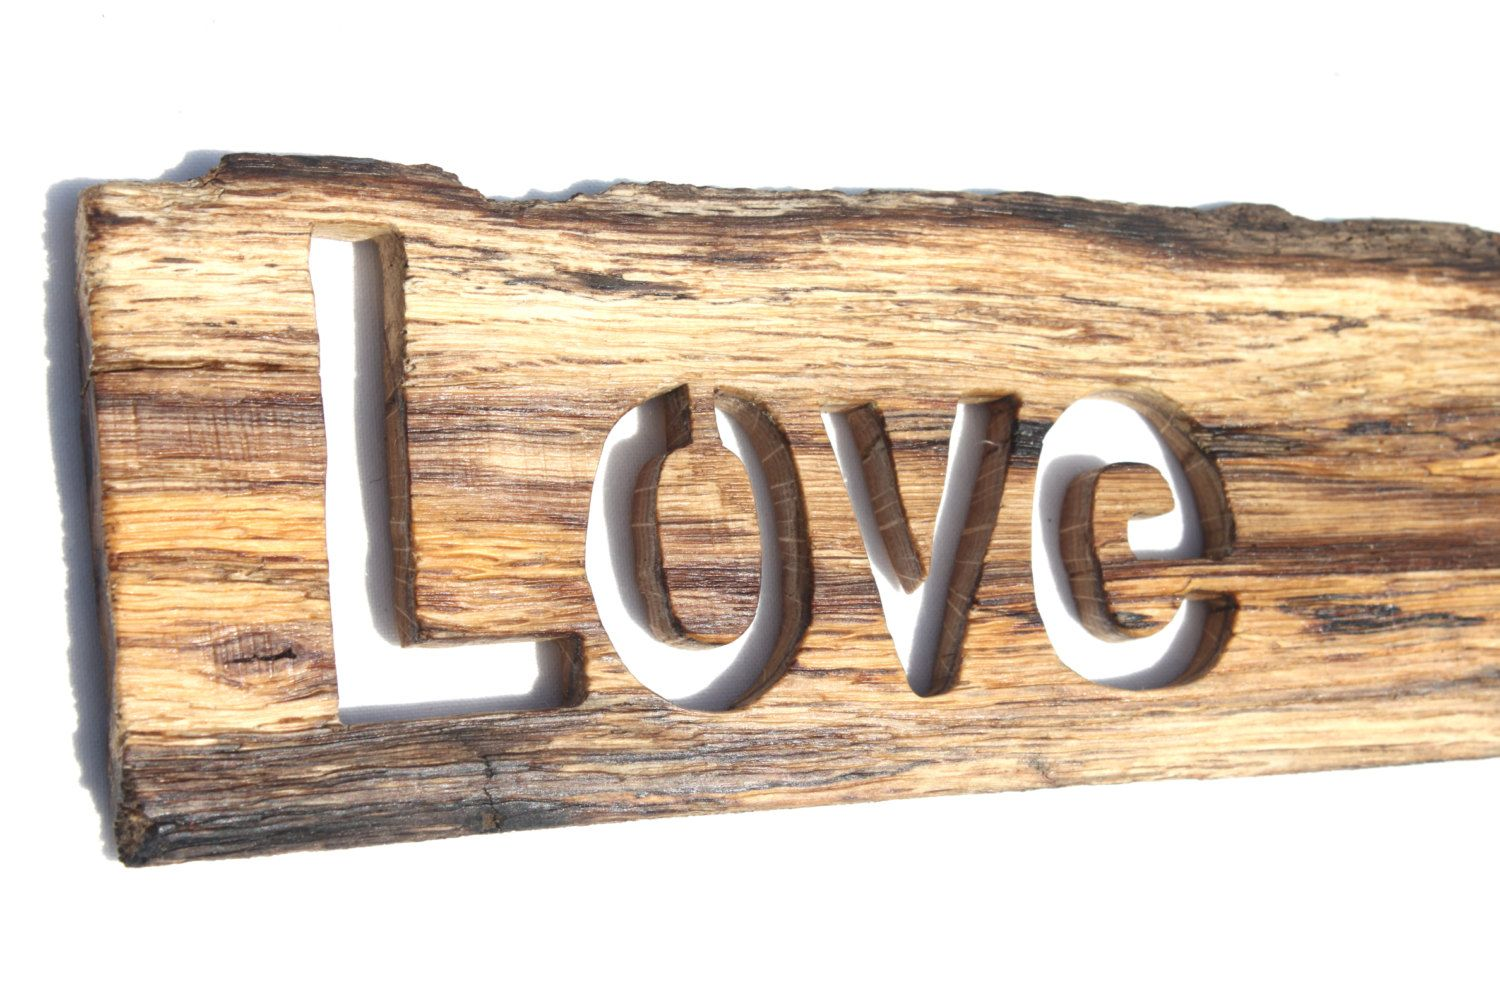 Love Sign, Love Sign, Oak Plank, Wooden Slice, Rustic Tree Slices, Painting  On Wood, Tree Trunk Slice, Wood Sign, Wooden Love Sign, Oak